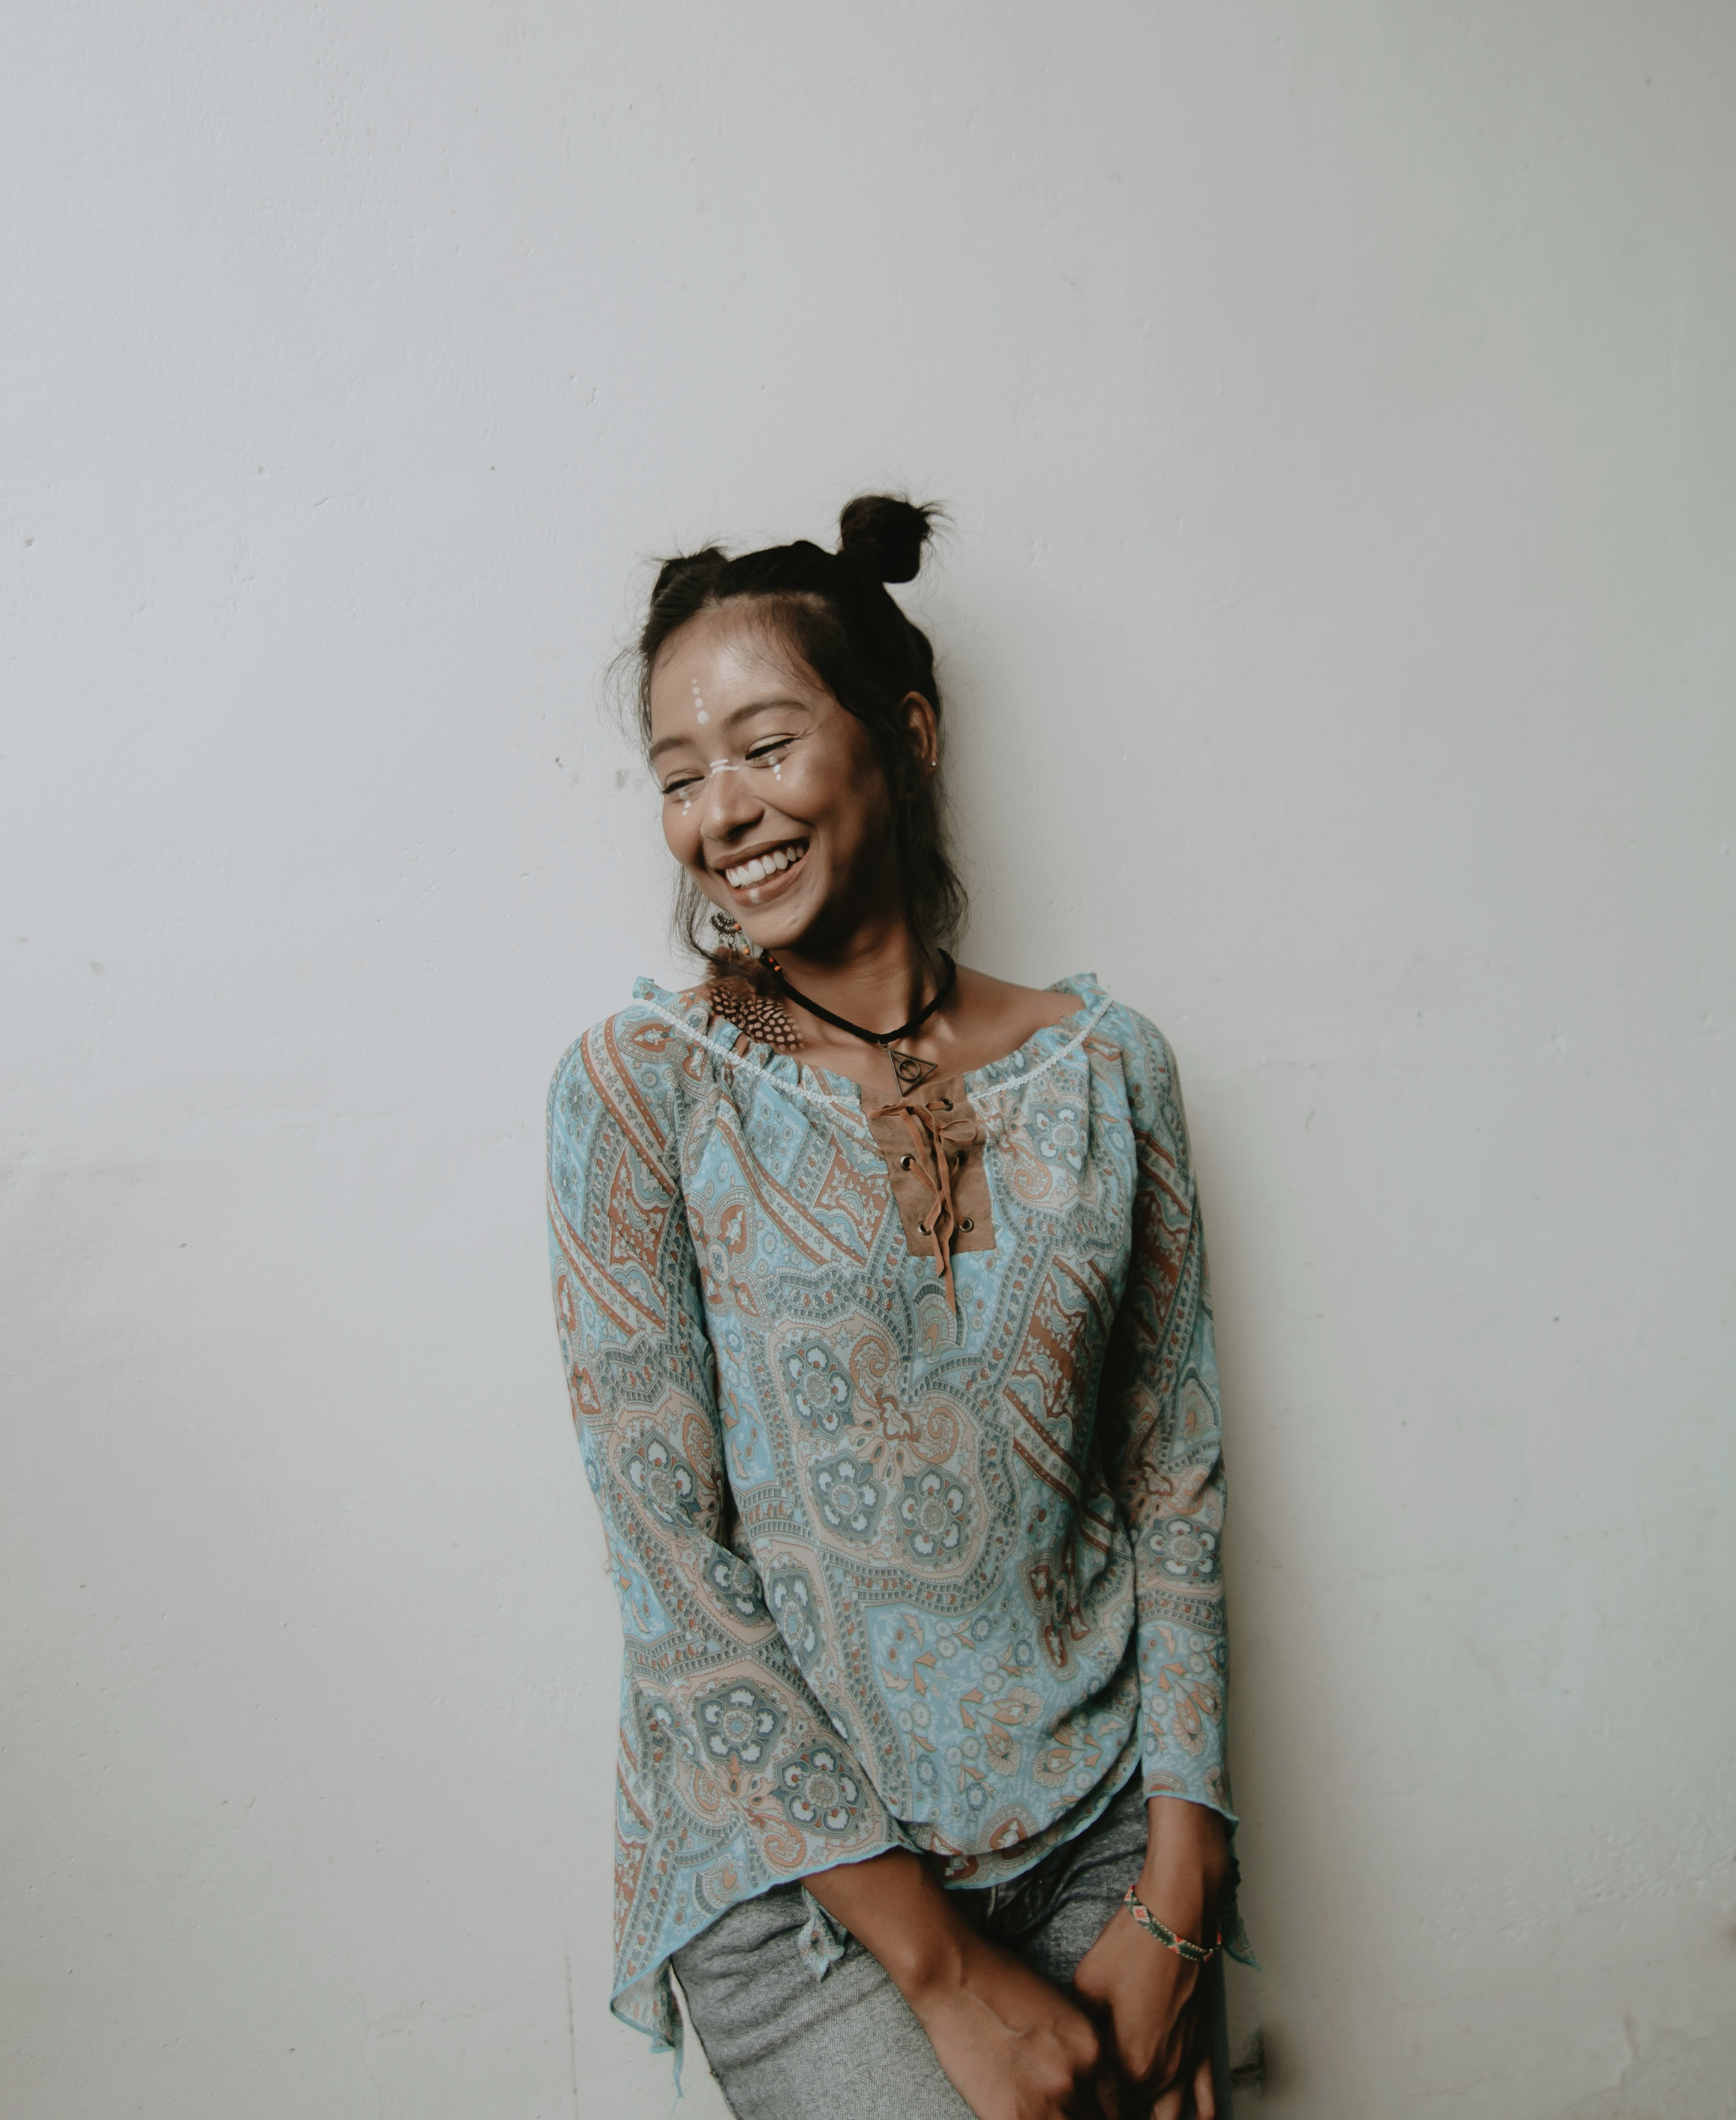 smiling woman wearing blue blouse leaning on wall